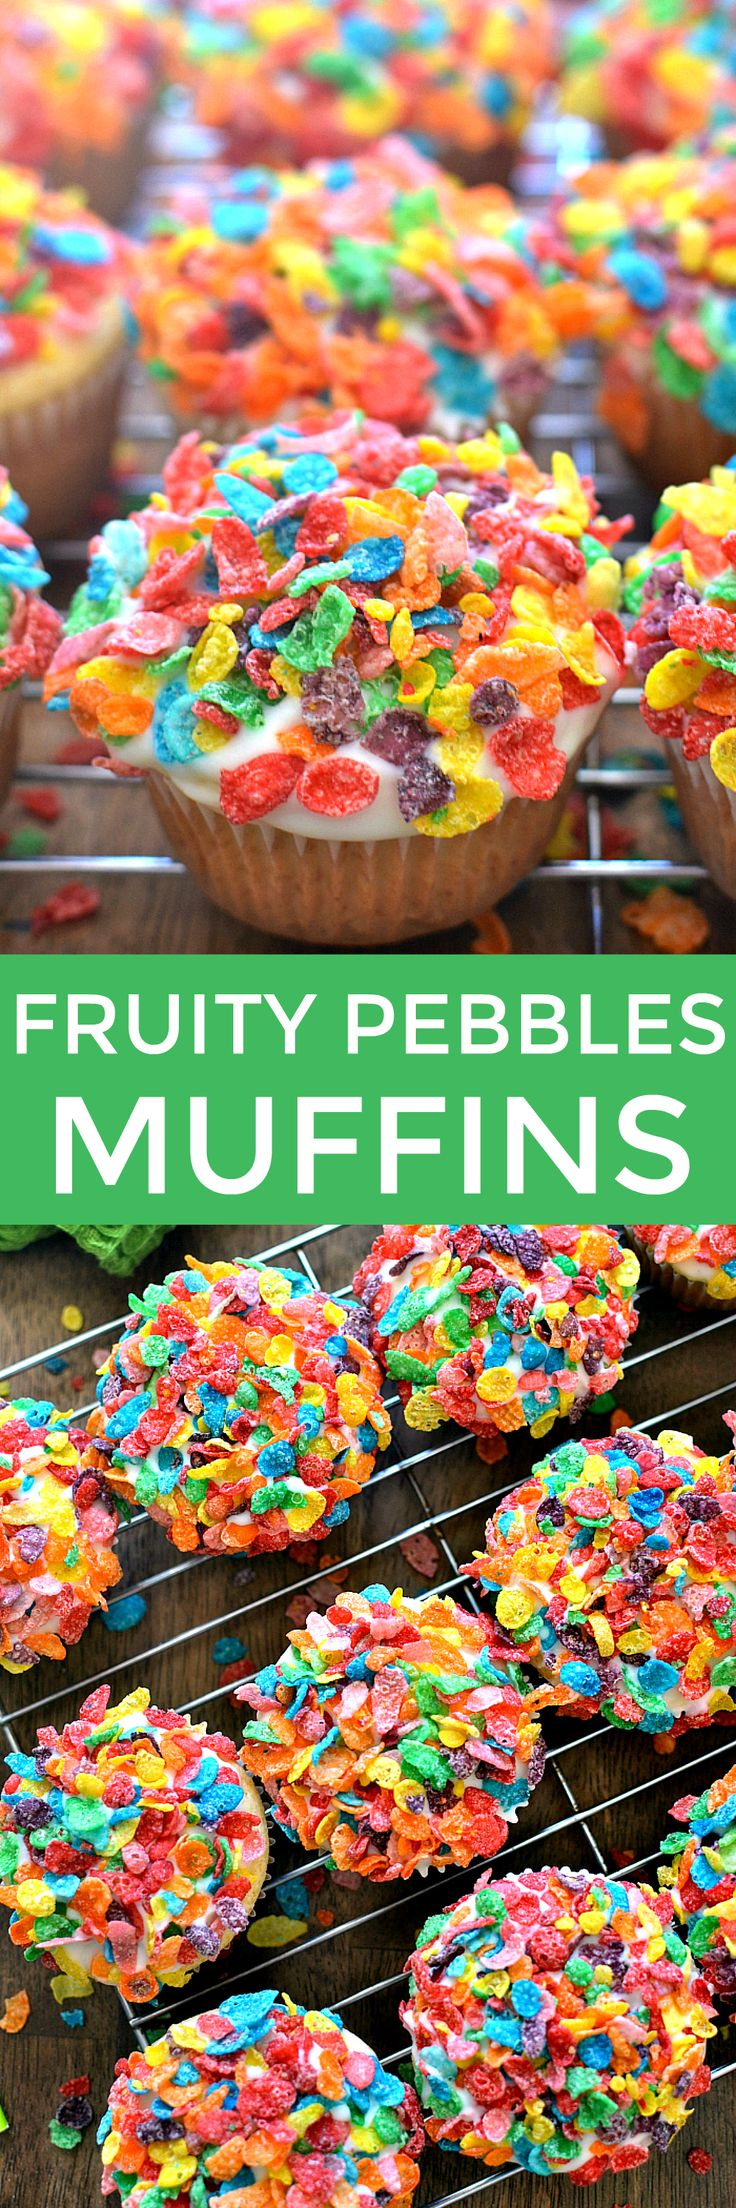 These Fruity Pebbles Muffins are the perfect St. Patrick's Day treat! Vanilla muffins topped with white chocolate and Fruity Pebbles...delicious for breakfast or any time of day! (Party Top Muffin Tins)